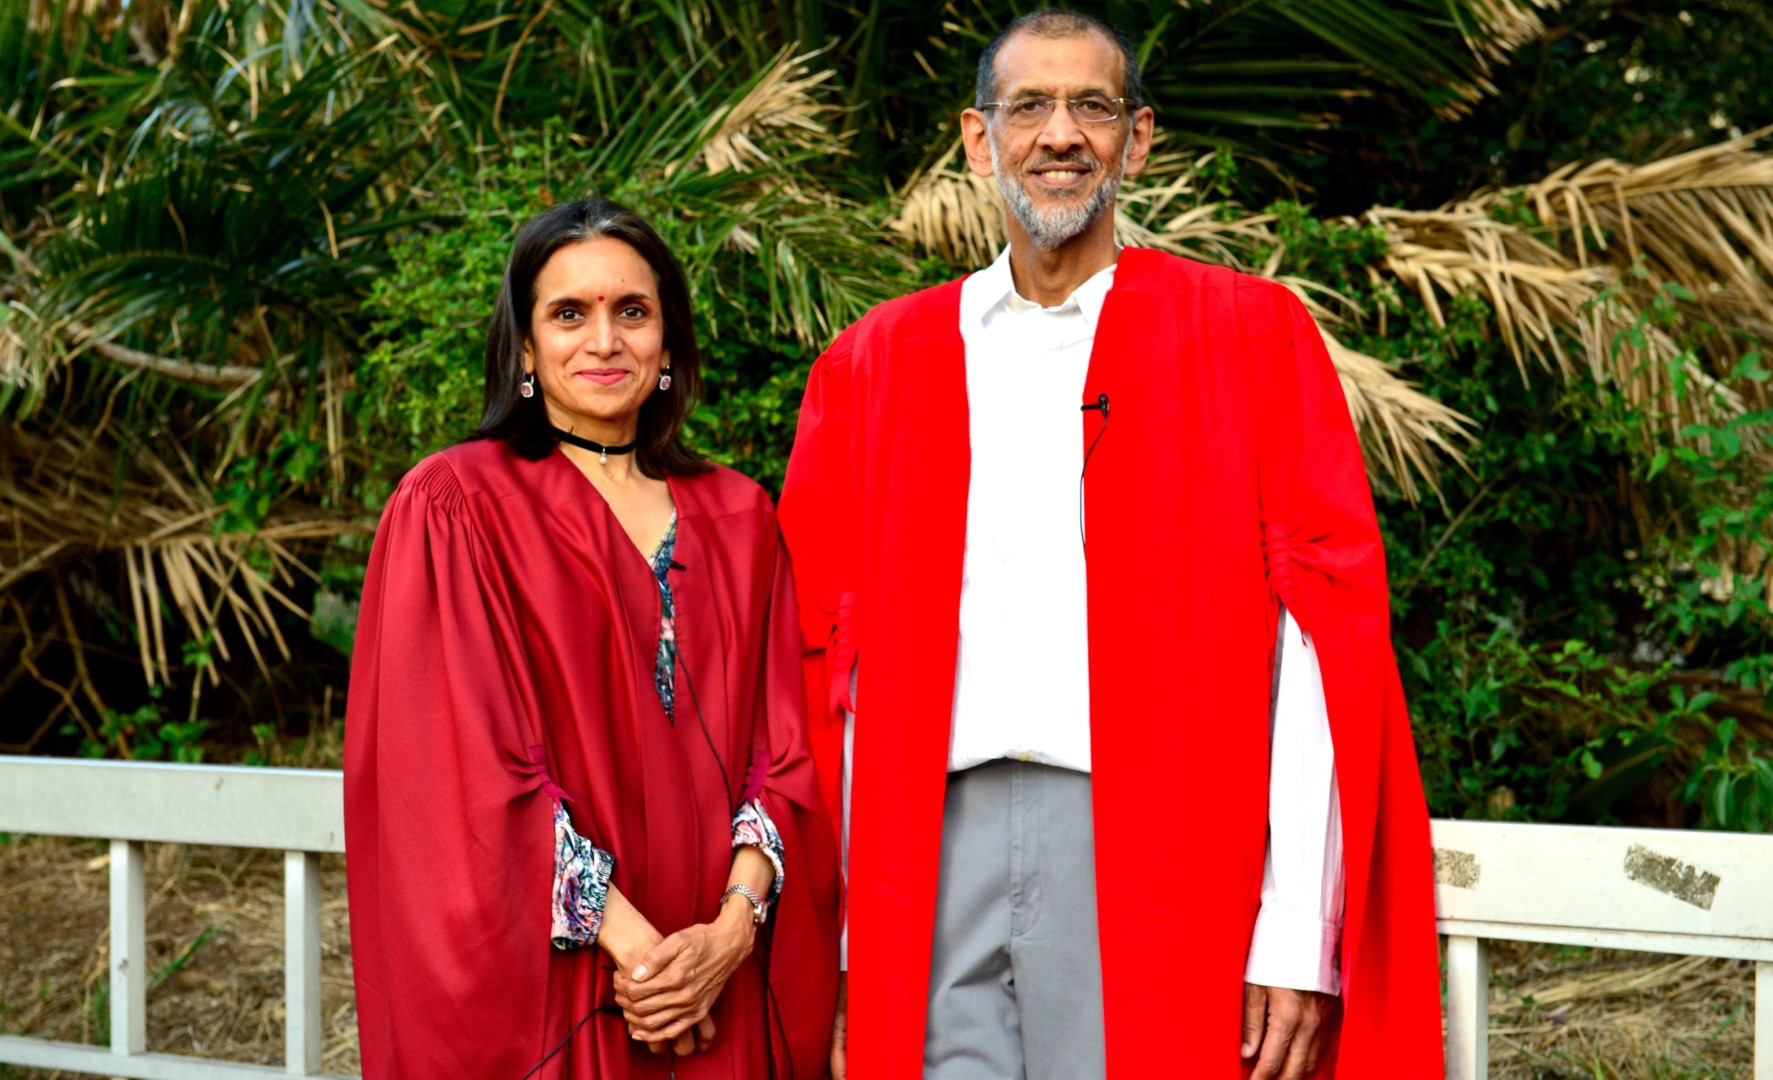 Professors Kalpana Hiralal and Goolam Vahed deliver their Inaugural lectures at the Westville campus.